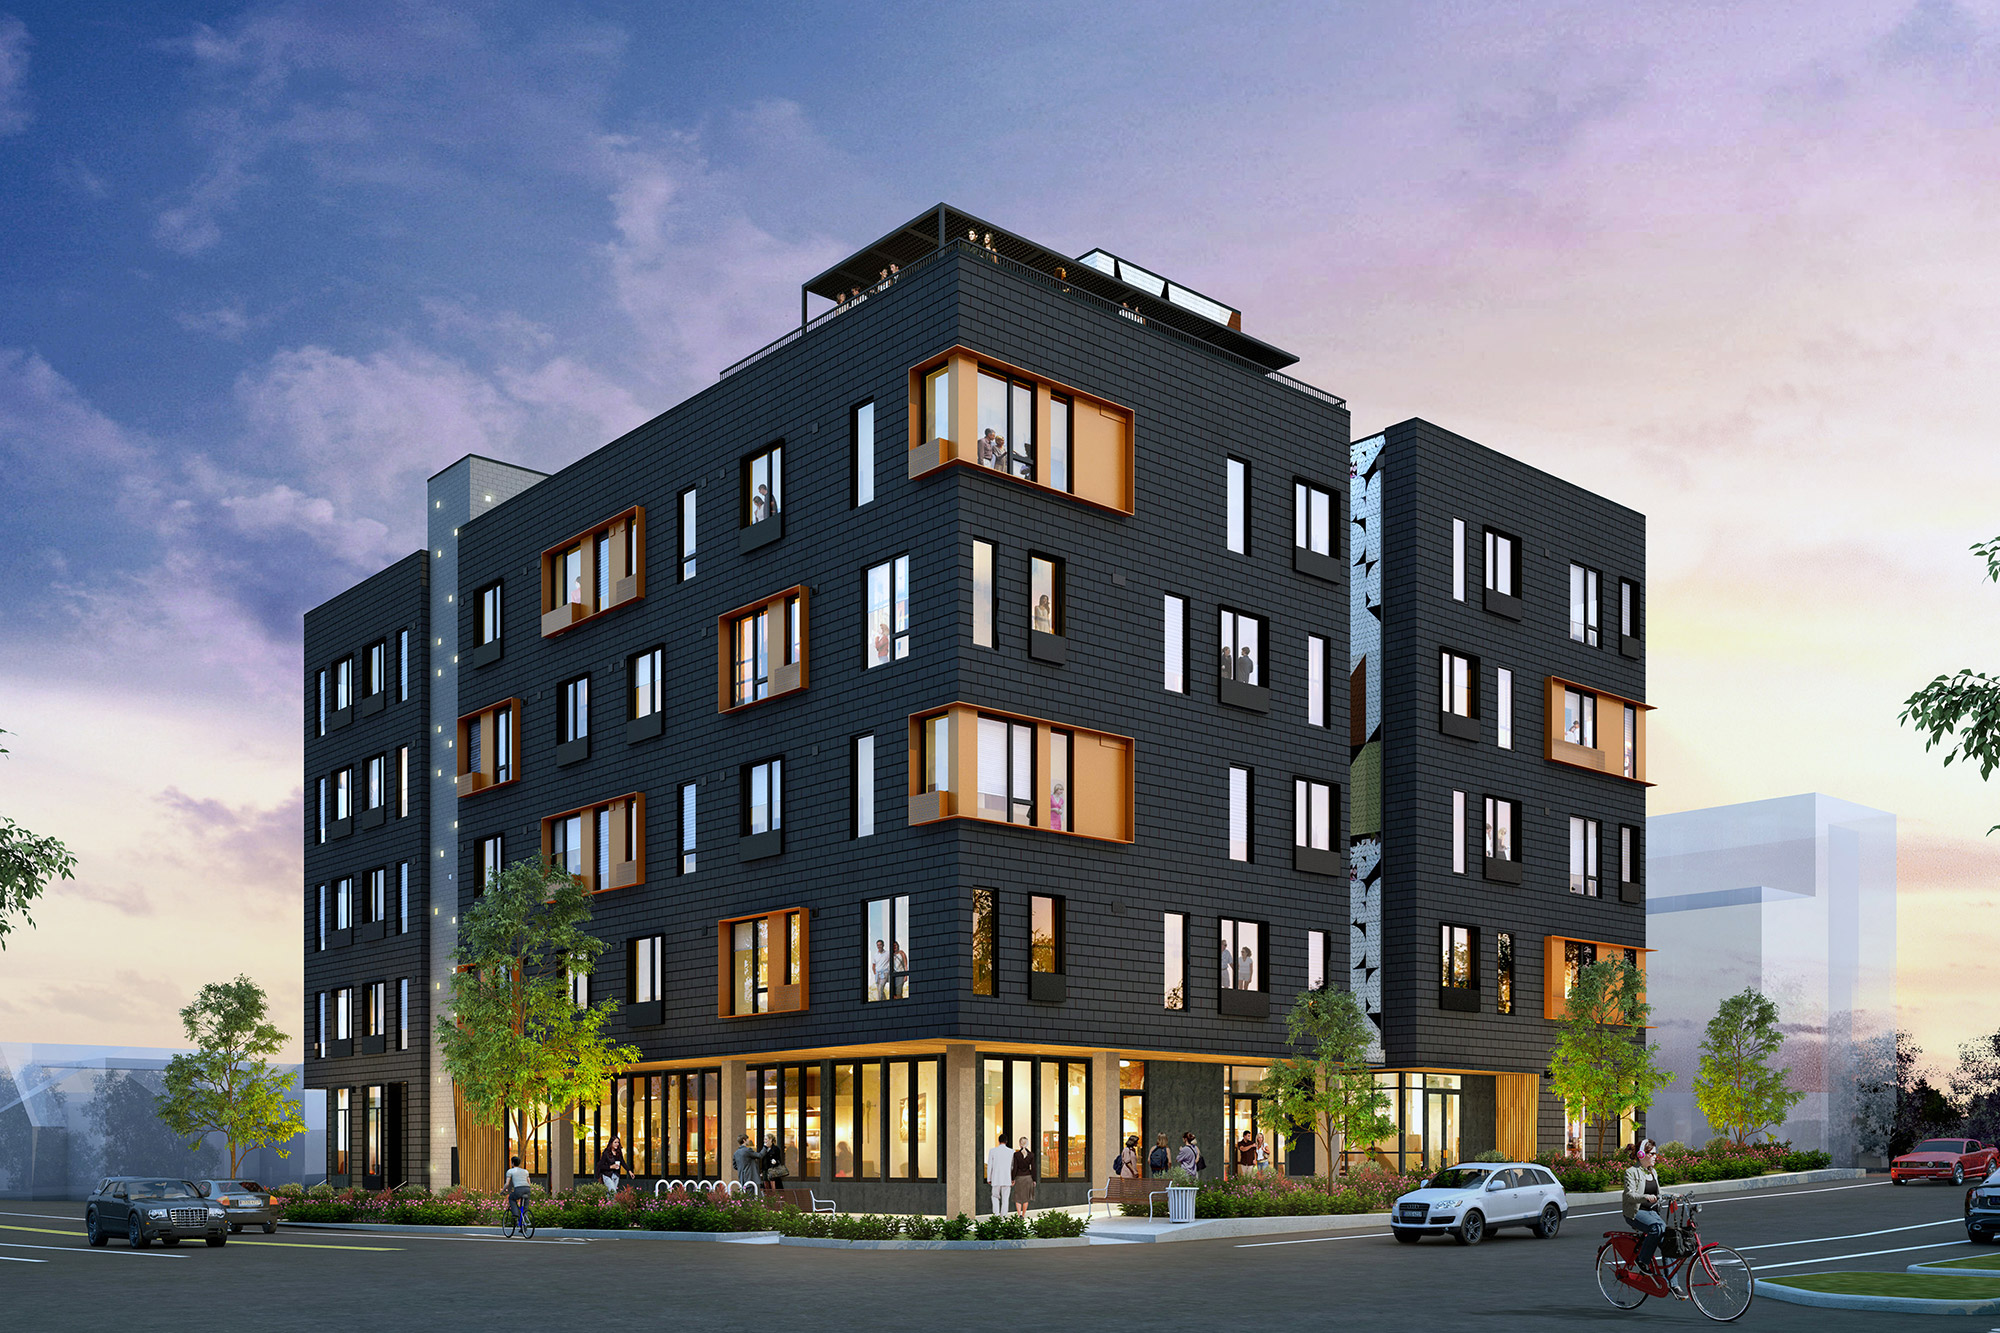 New Project: 16th & Humboldt Apartments